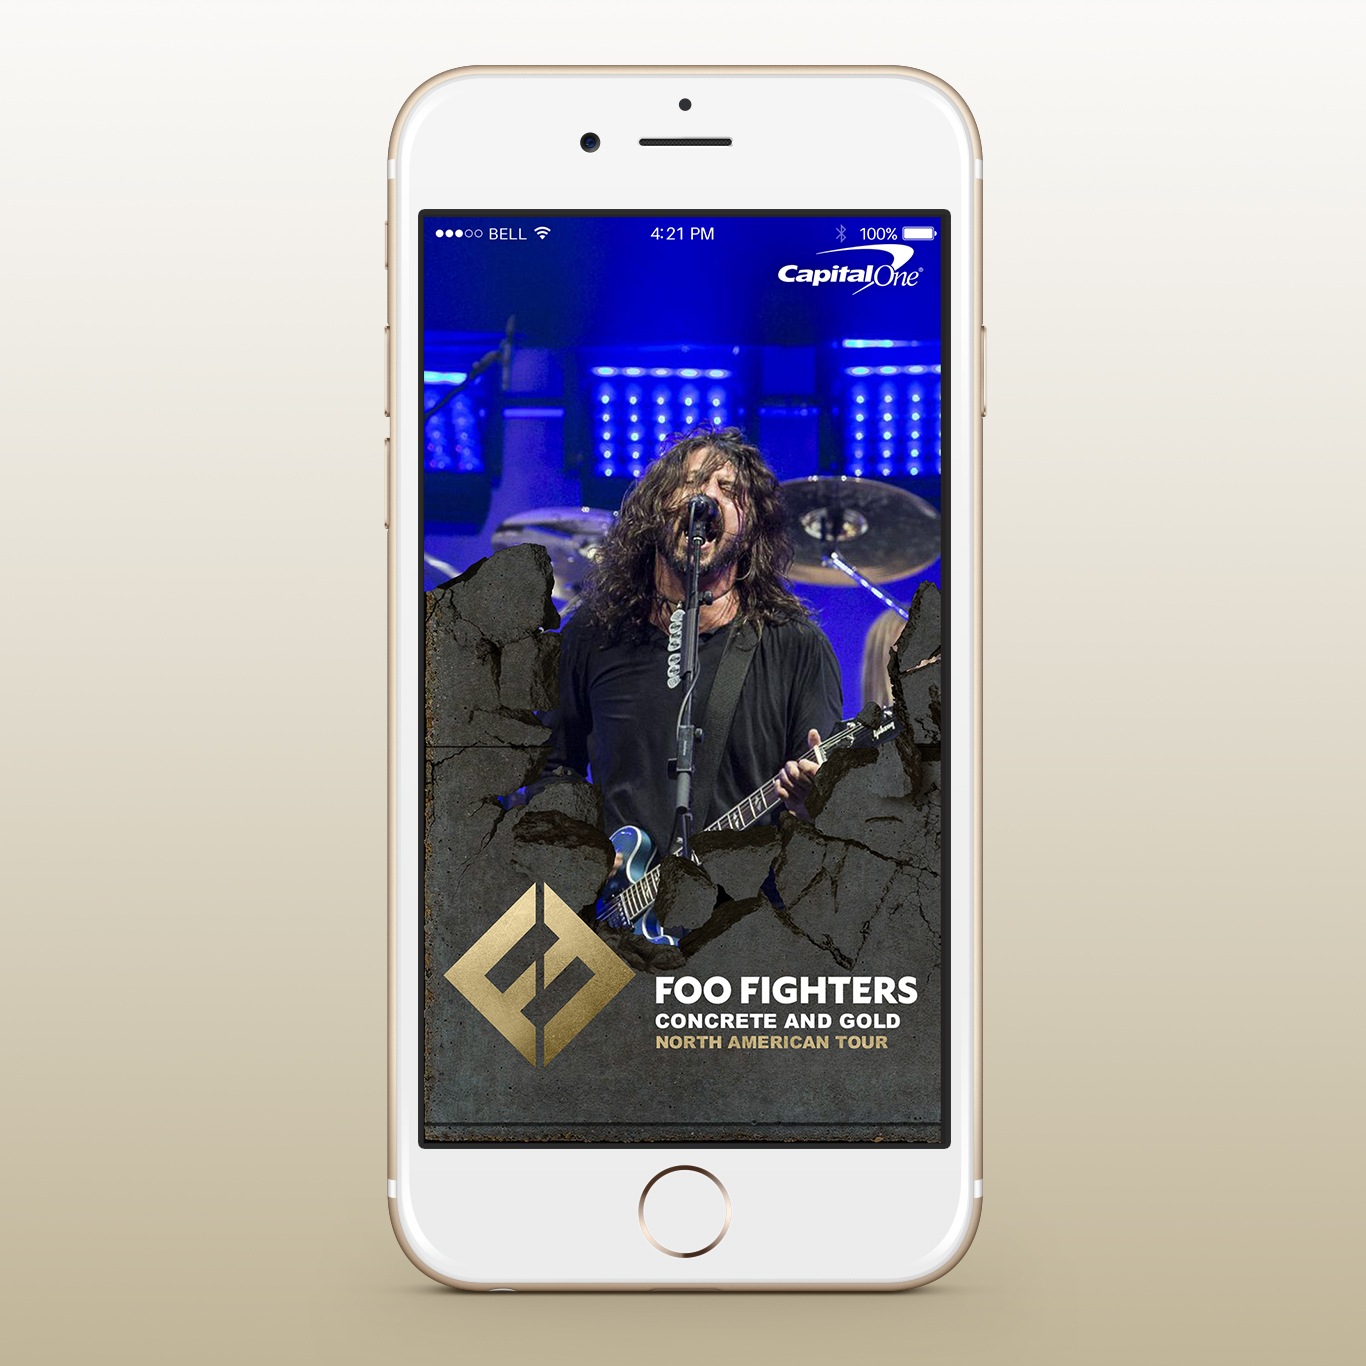 Foo Fighters Concrete Gold Tour Snapchat Filters - Concept 1